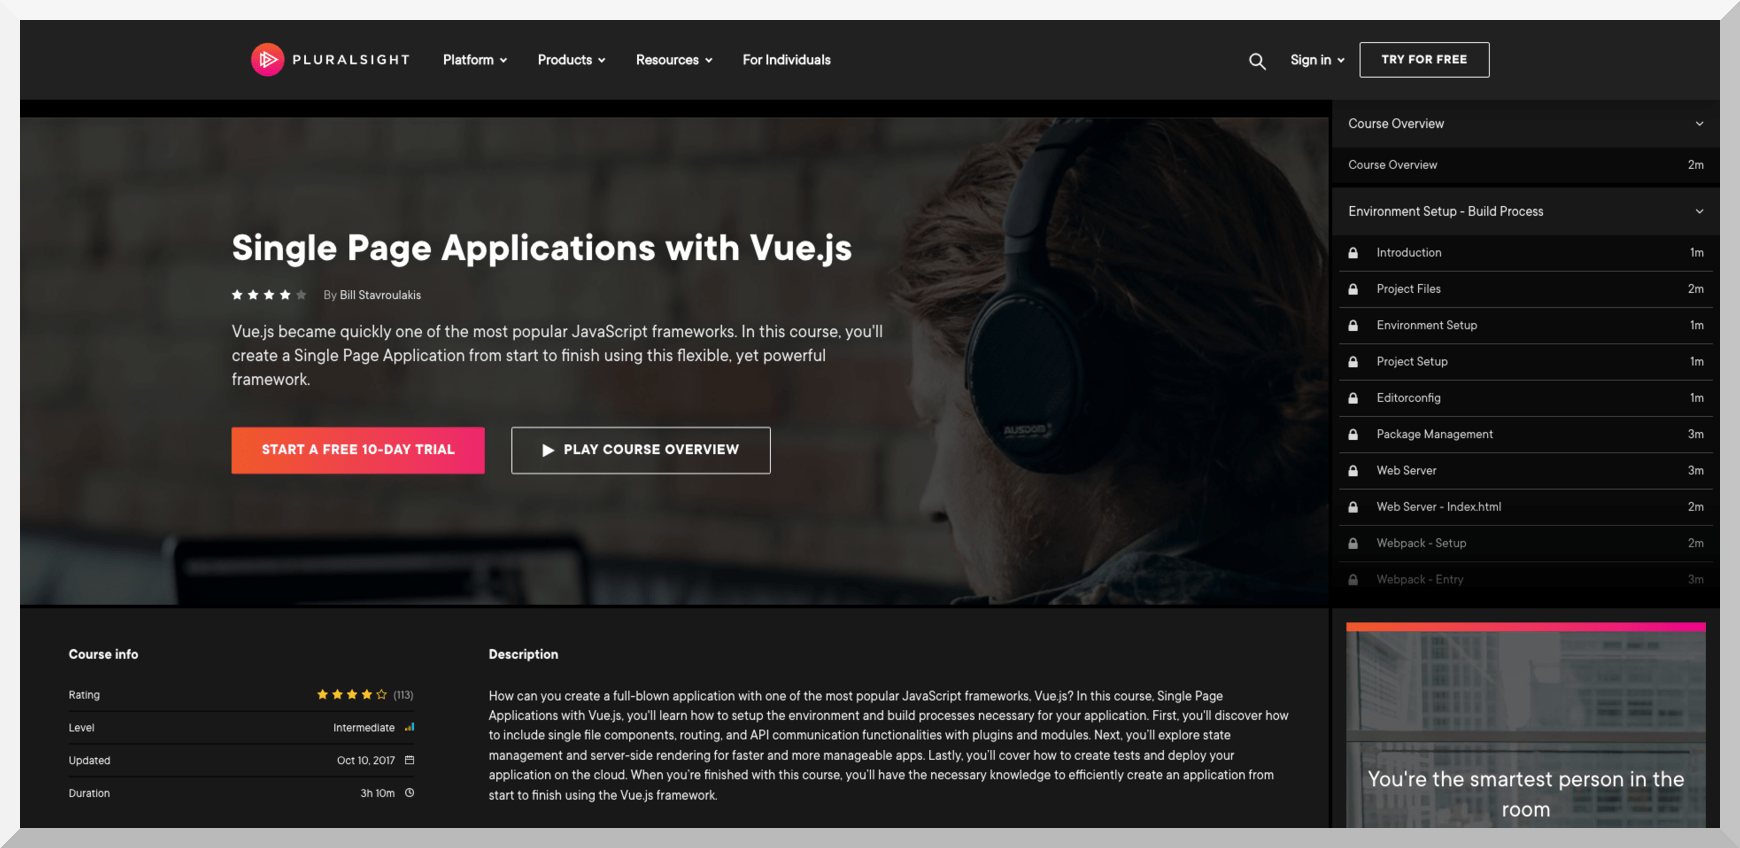 Single Page Applications with Vue.js – Pluralsight